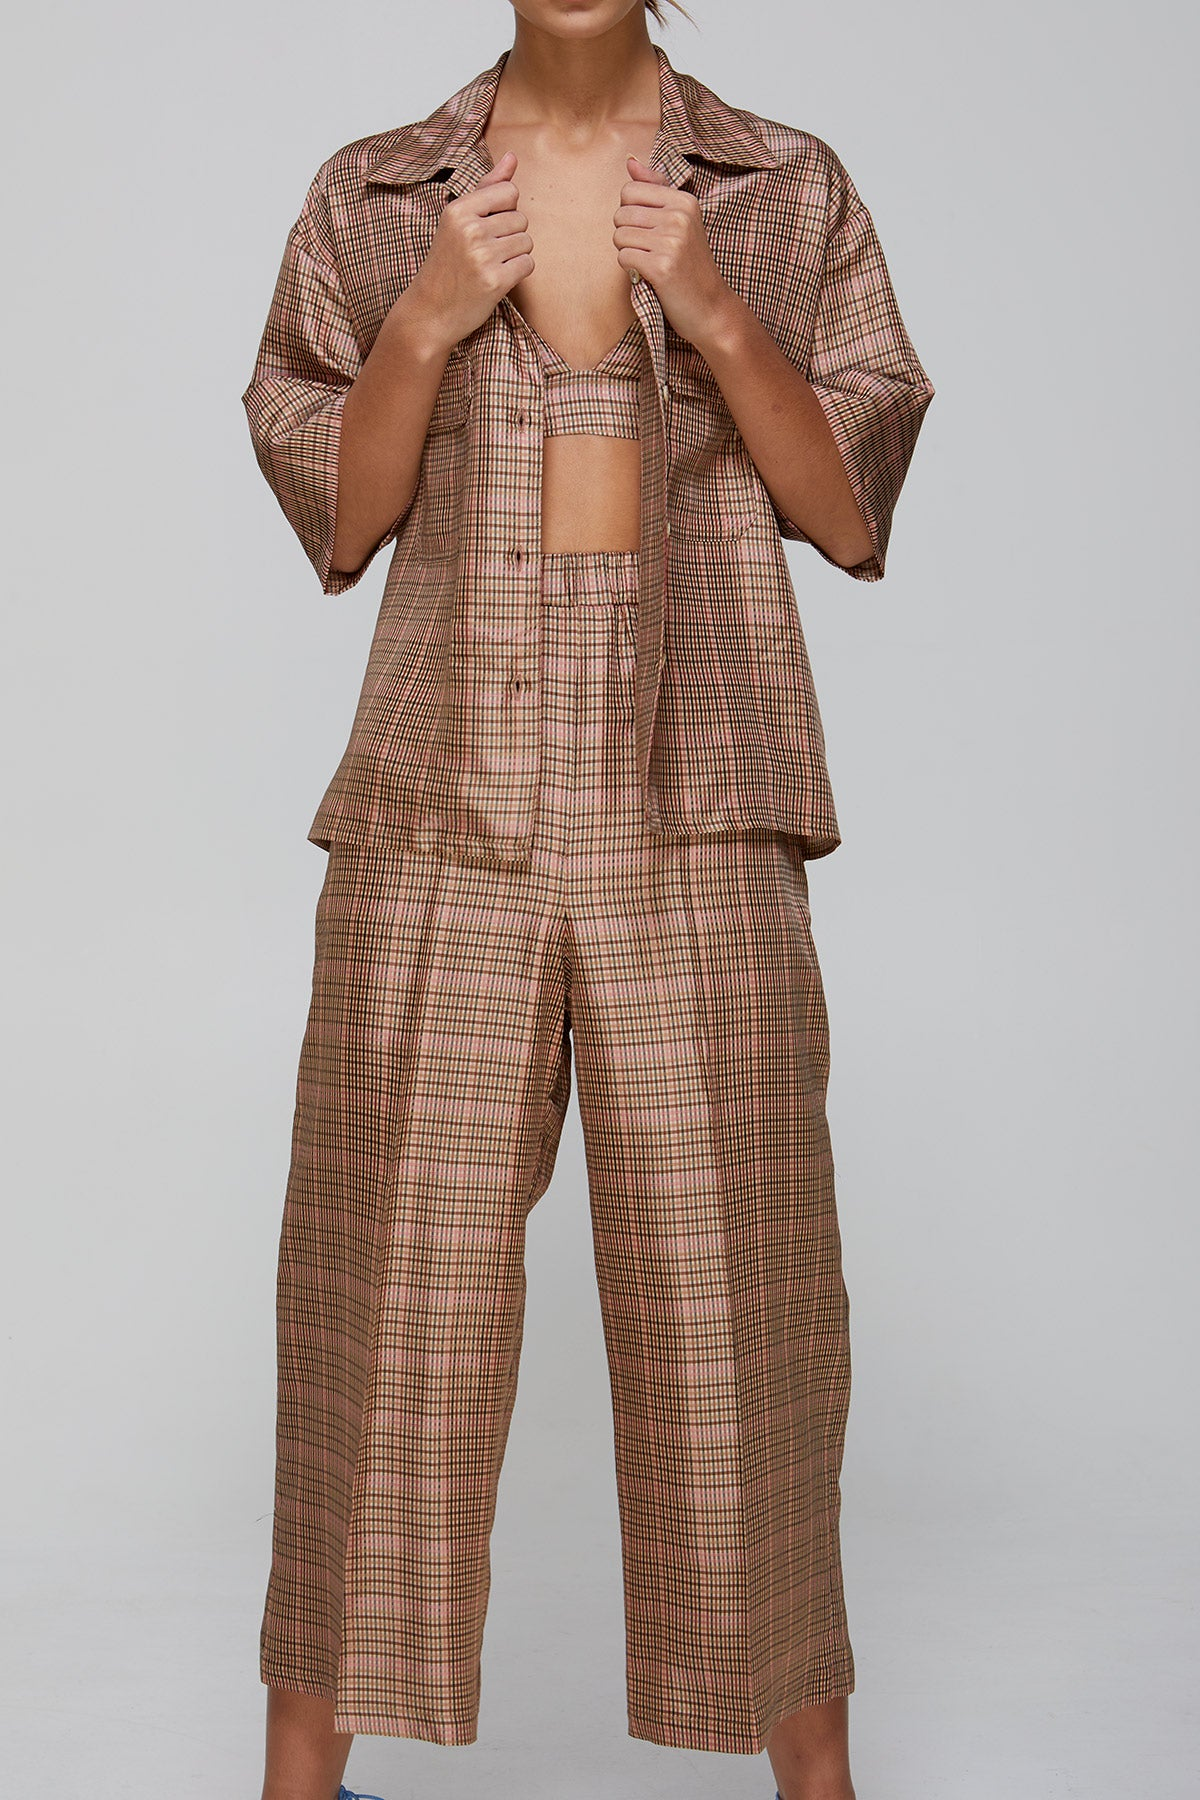 Carly Pant Pink Yarn Dyed Check Pyjama Style PantsGregory SS20 Collection NZ Sustainable Fashion Design